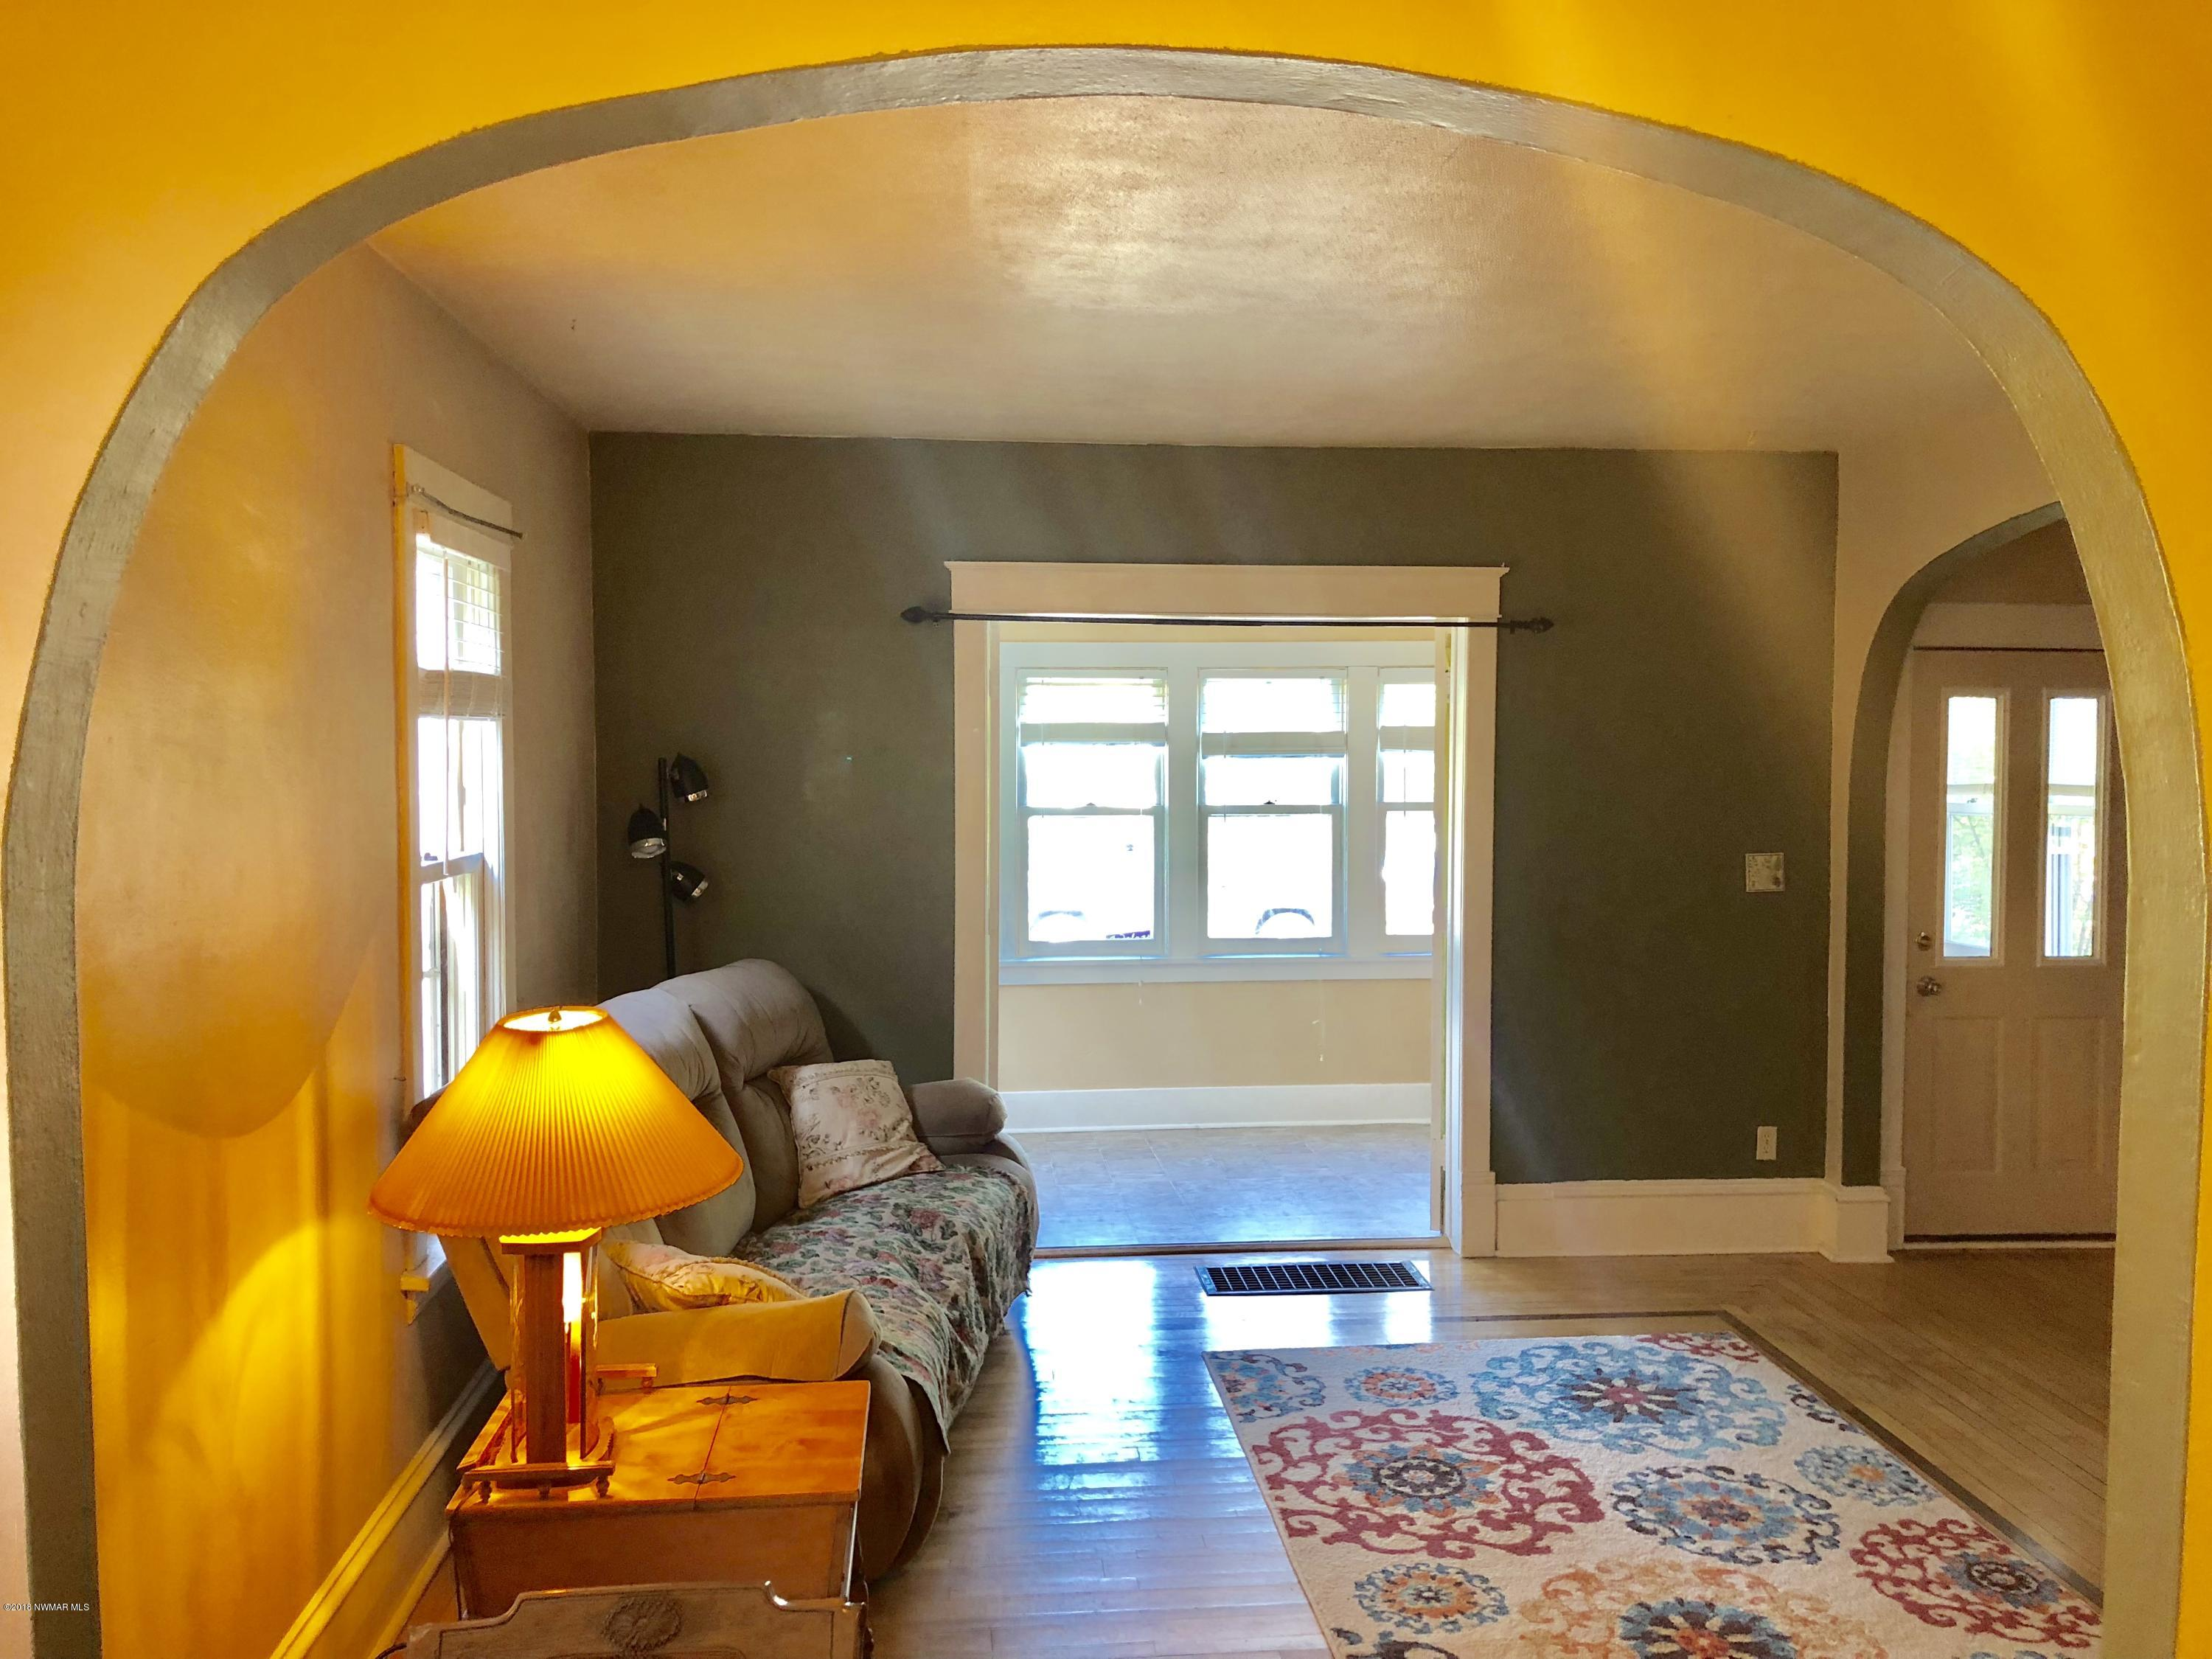 The archways in this home add character